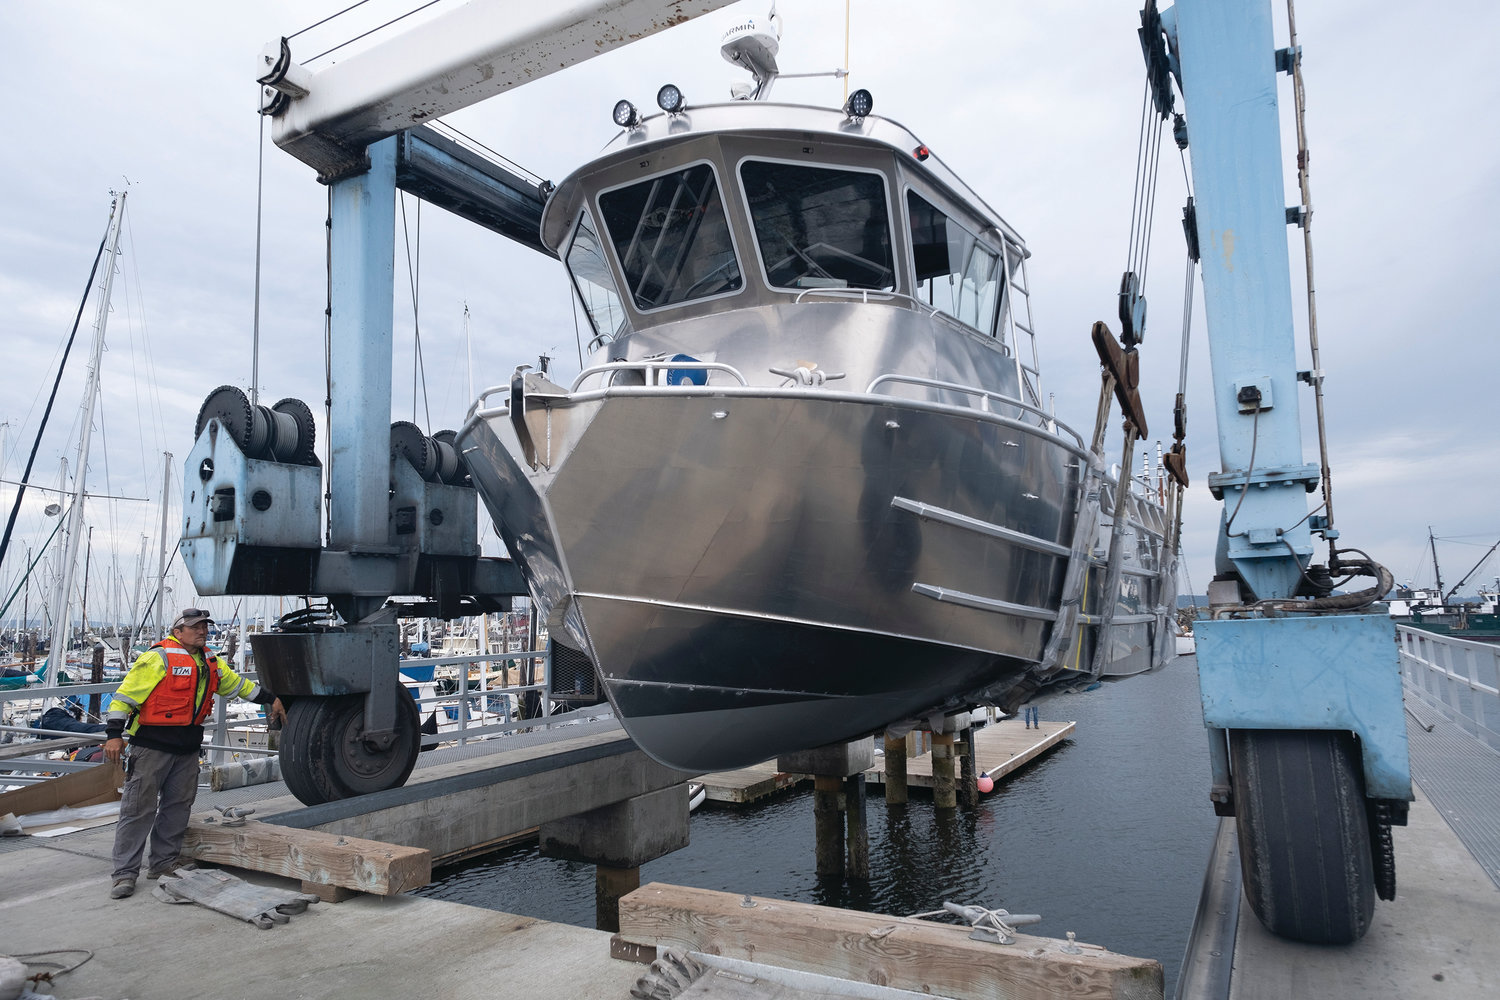 Marine trades plan for reopening in Phase 2